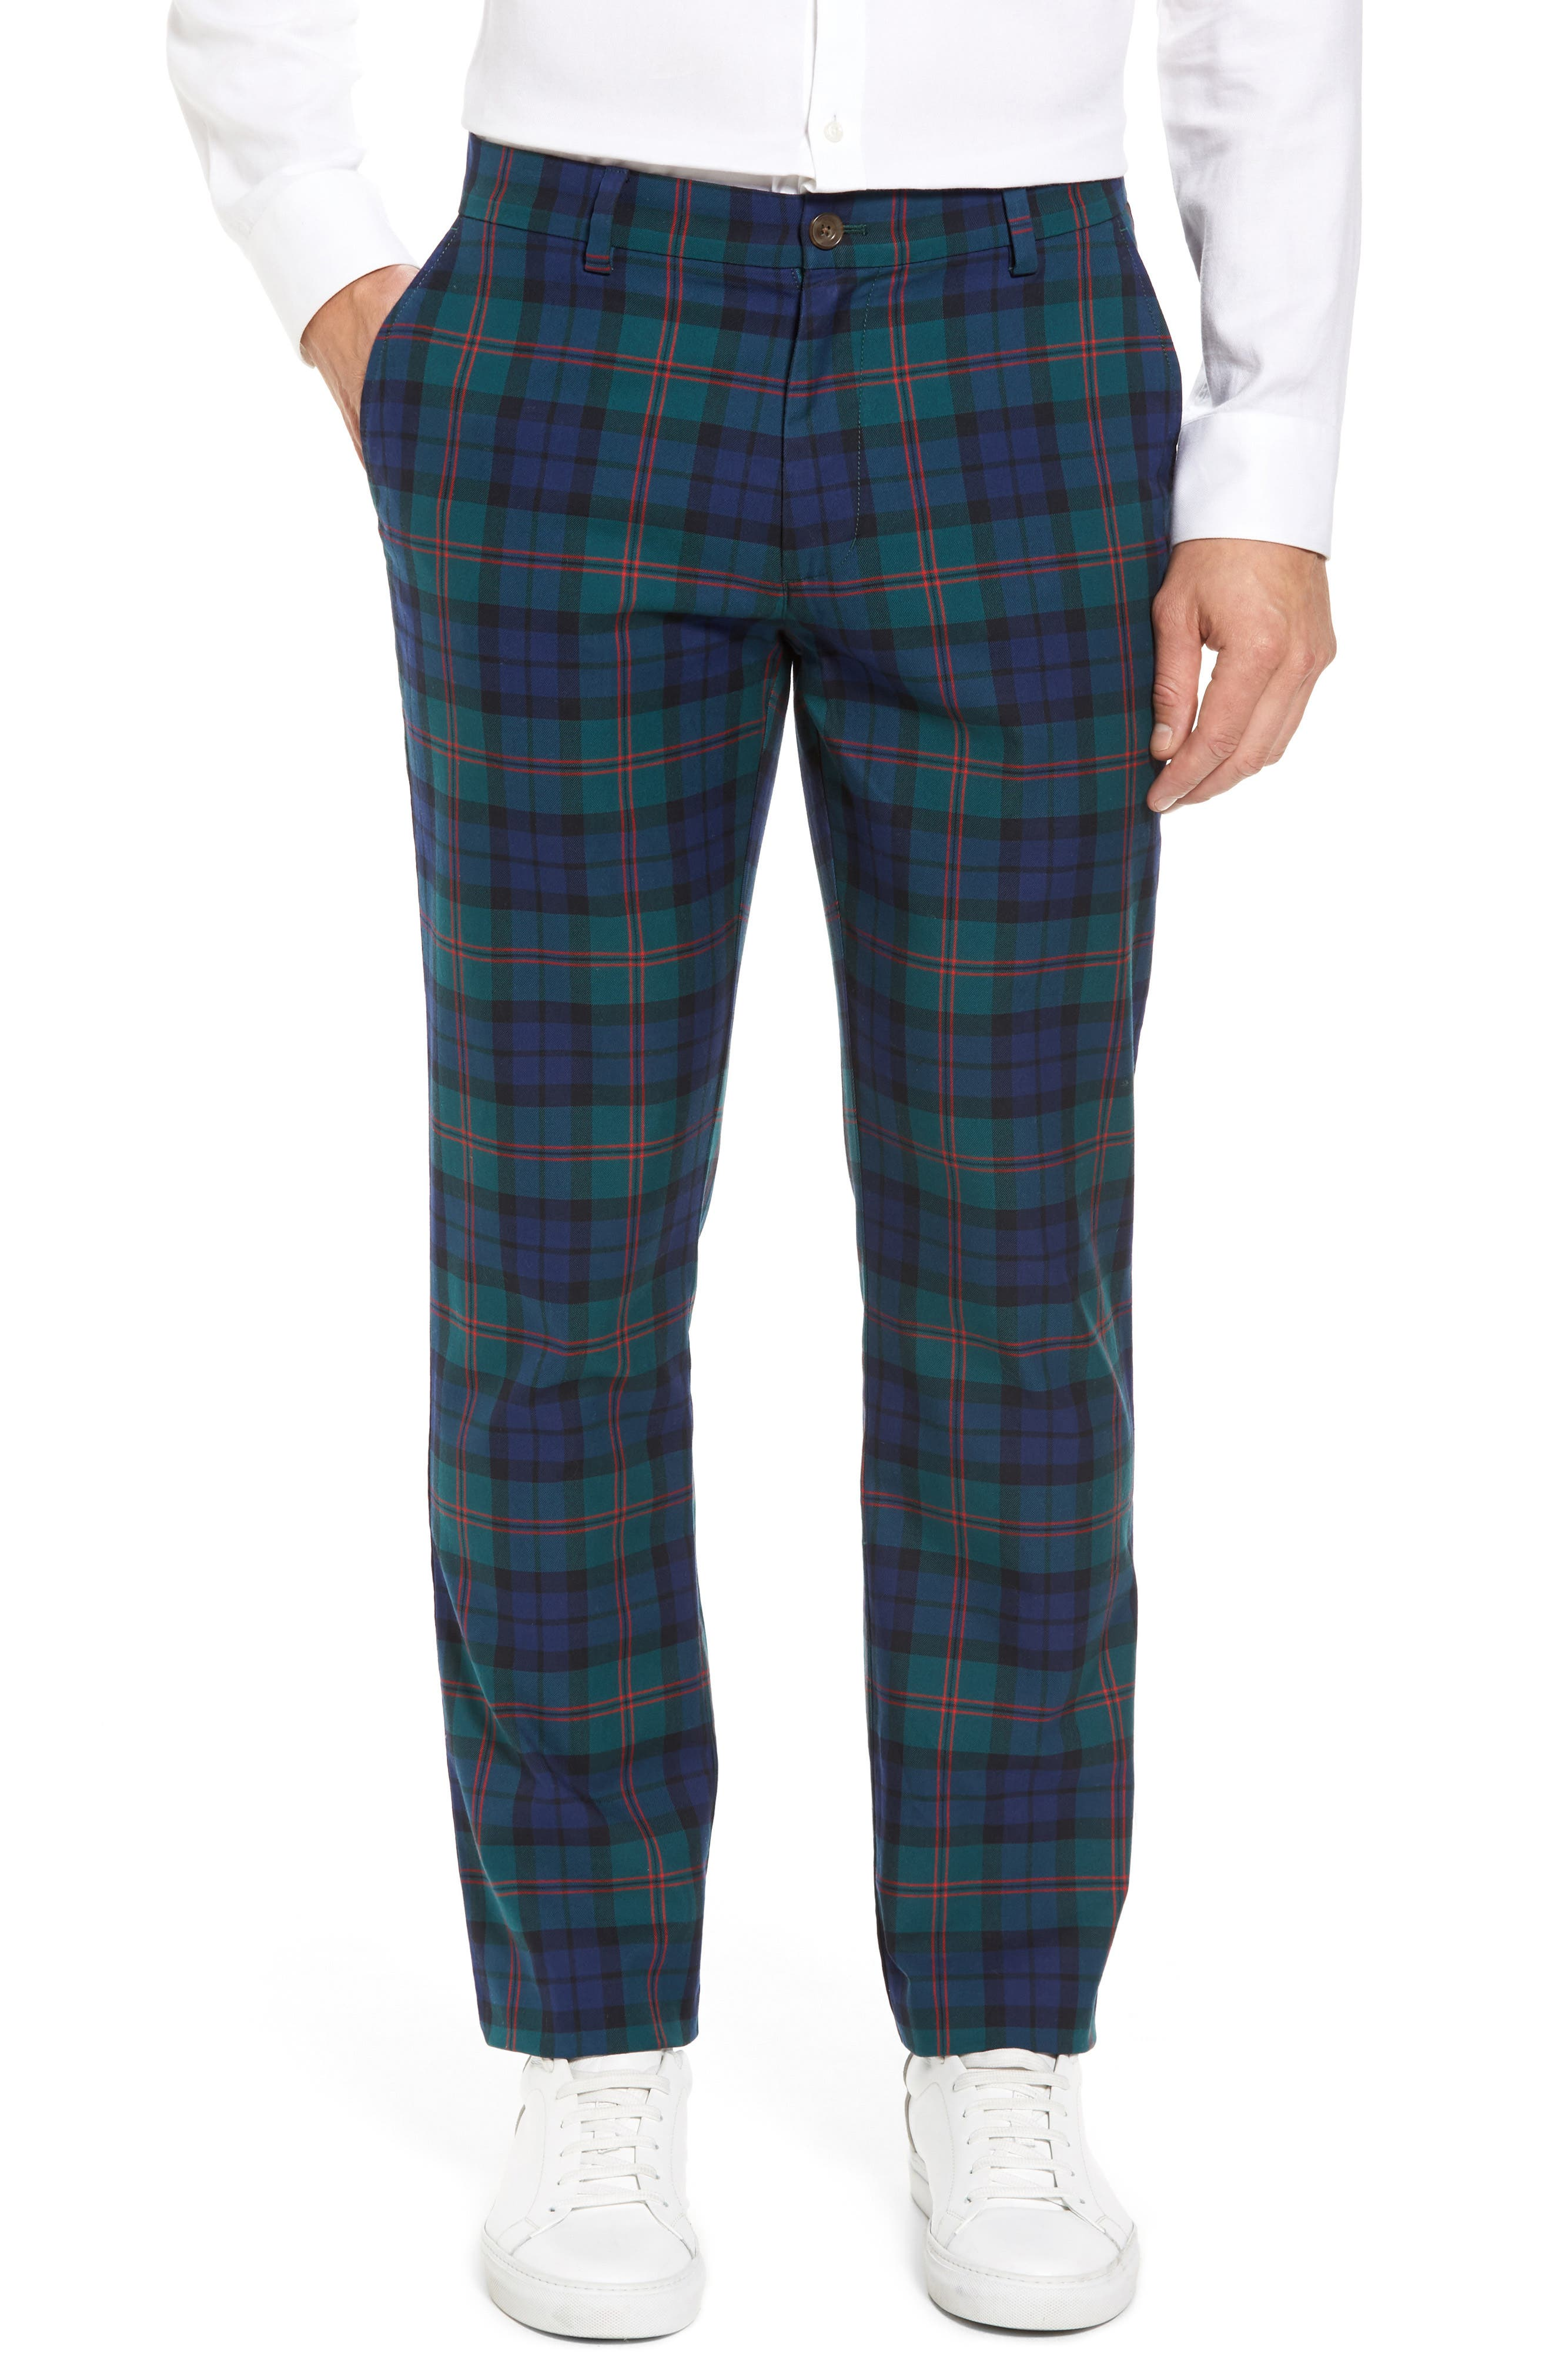 Main Image - vineyard vines Breaker Holiday Tartan Pants